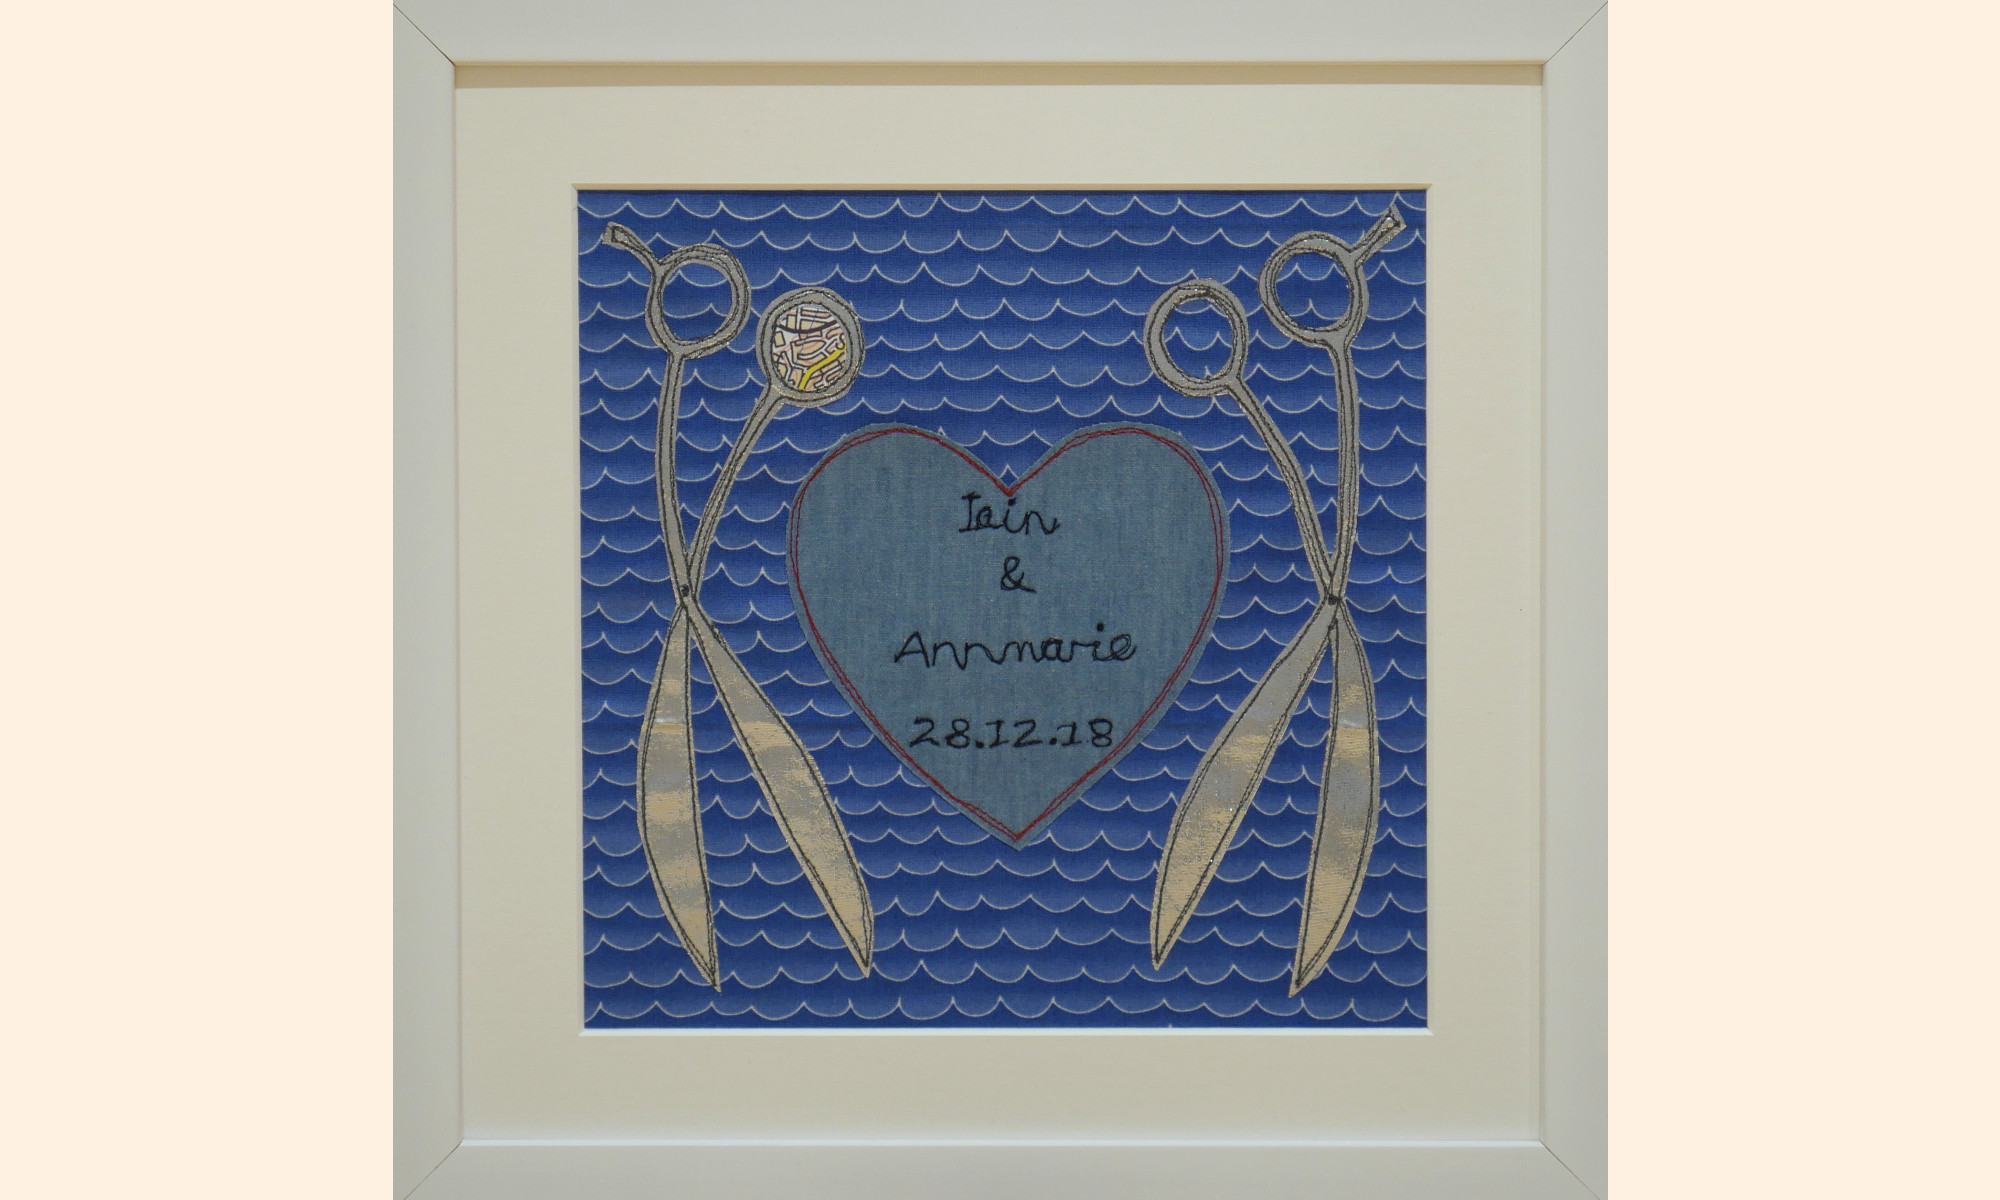 framed picture, 2 pairs of scissors around a love heart with the couples names on.